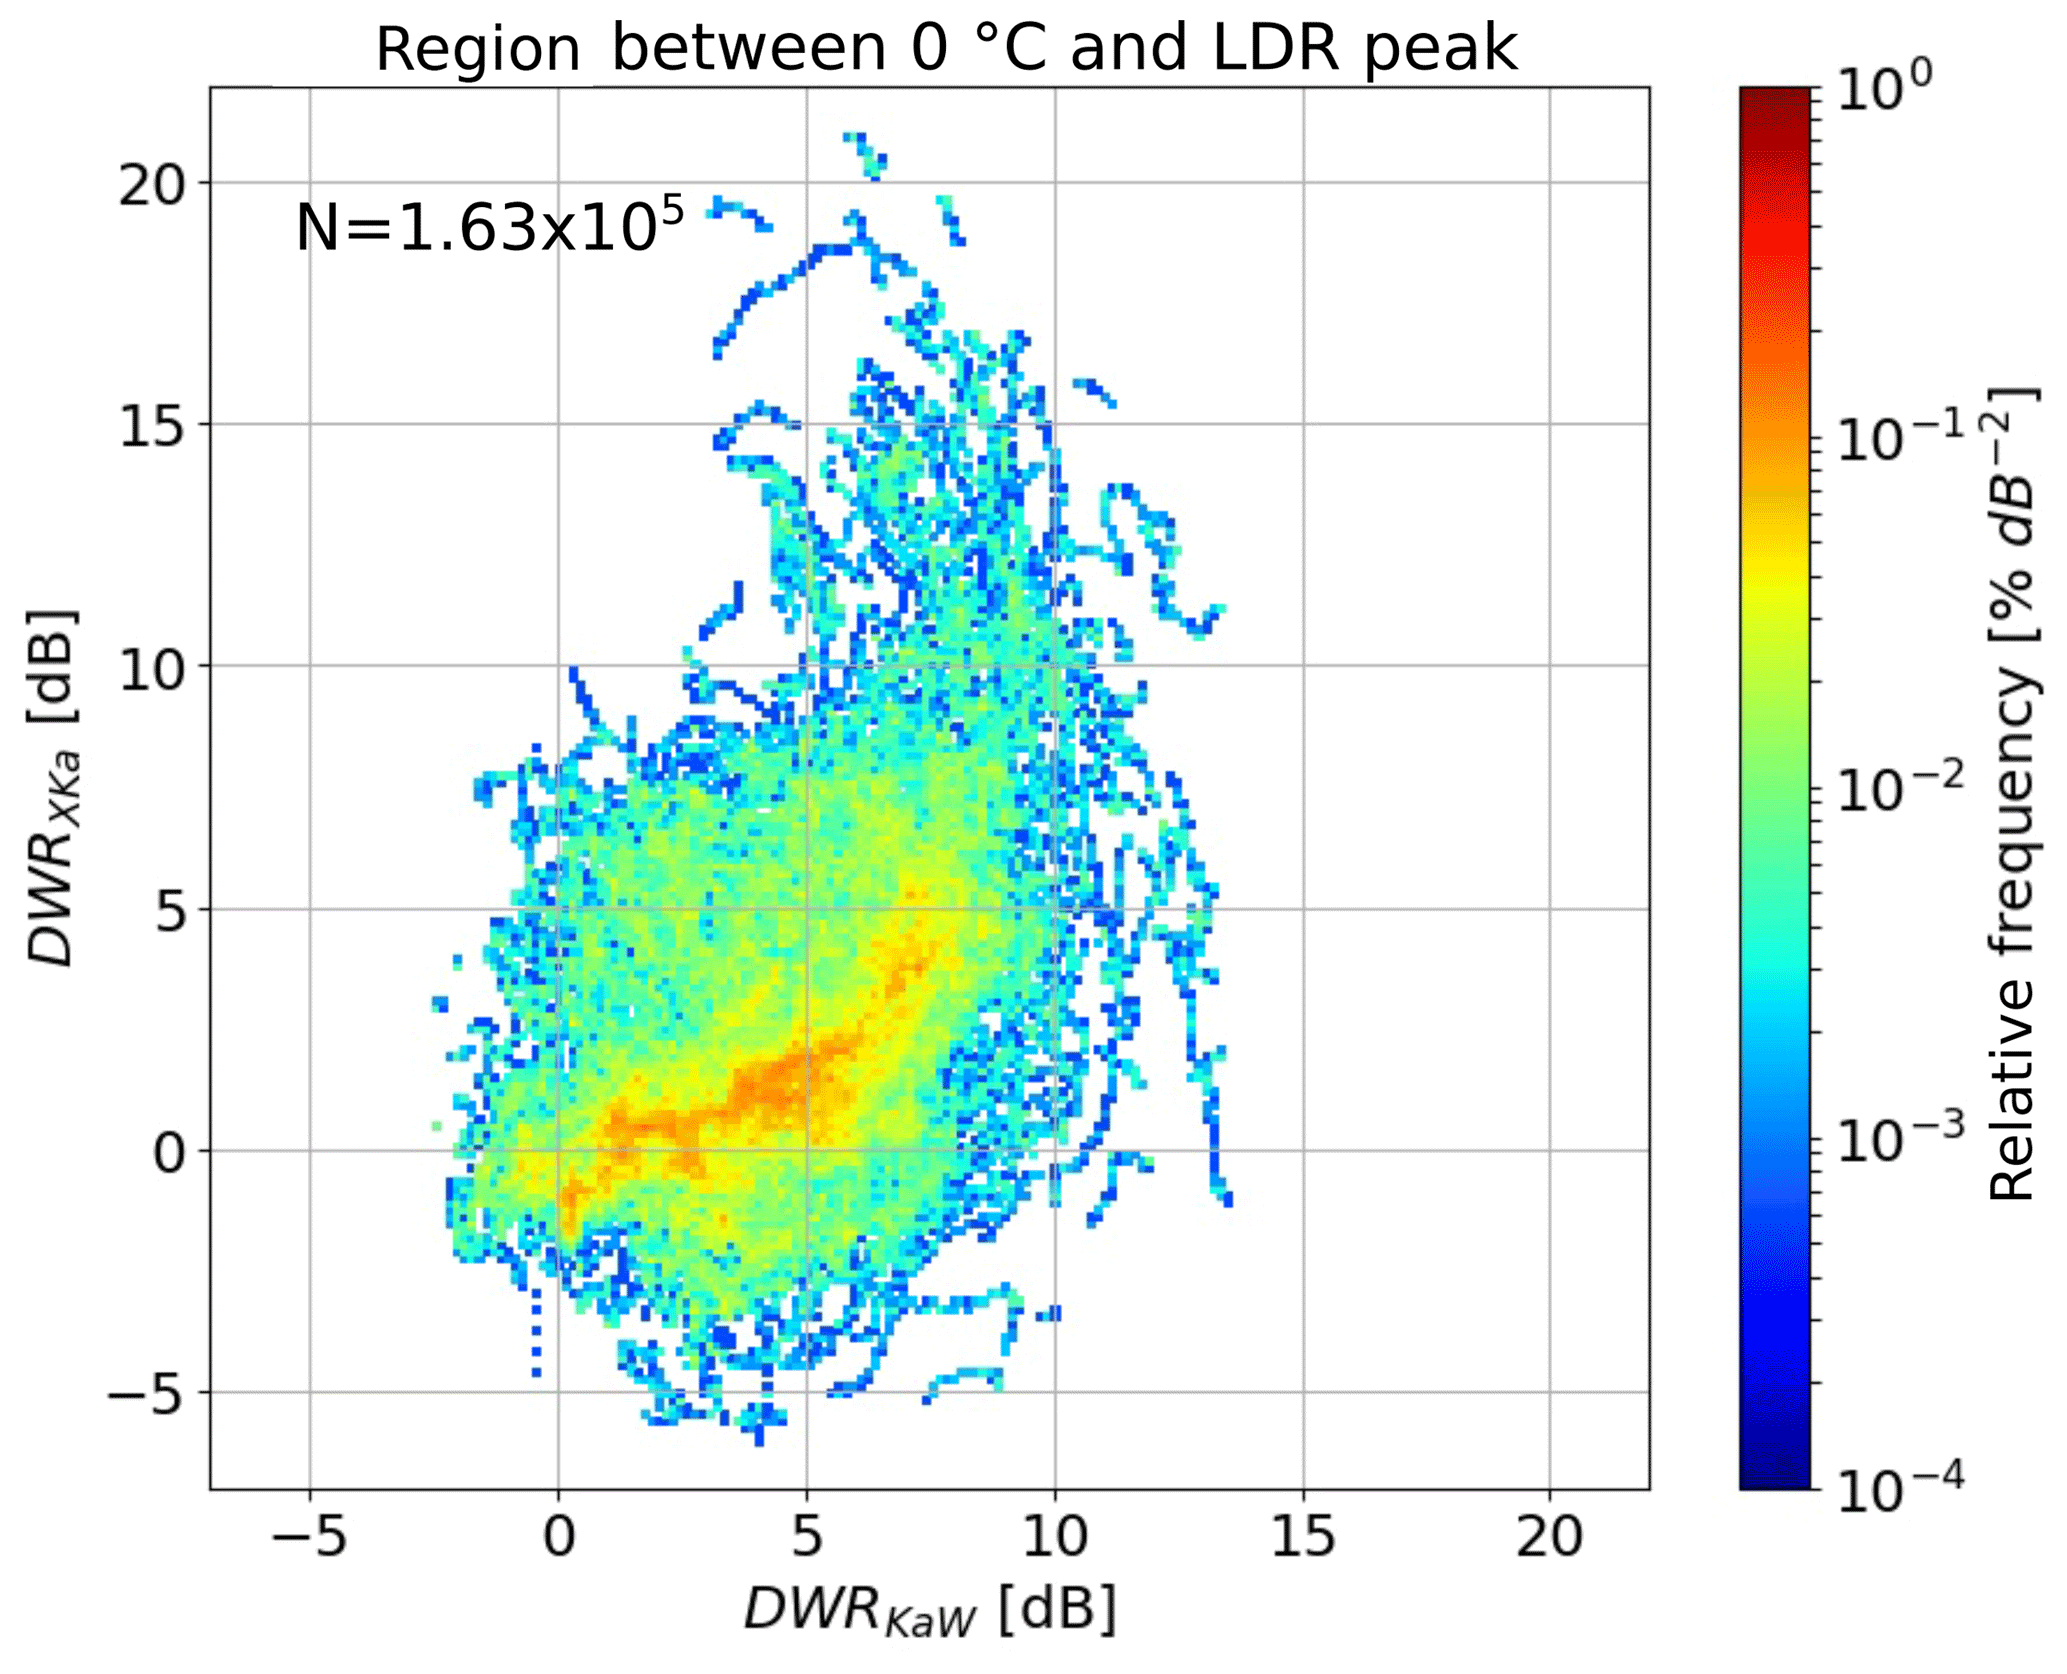 ESSD - The TRIple-frequency and Polarimetric radar Experiment for